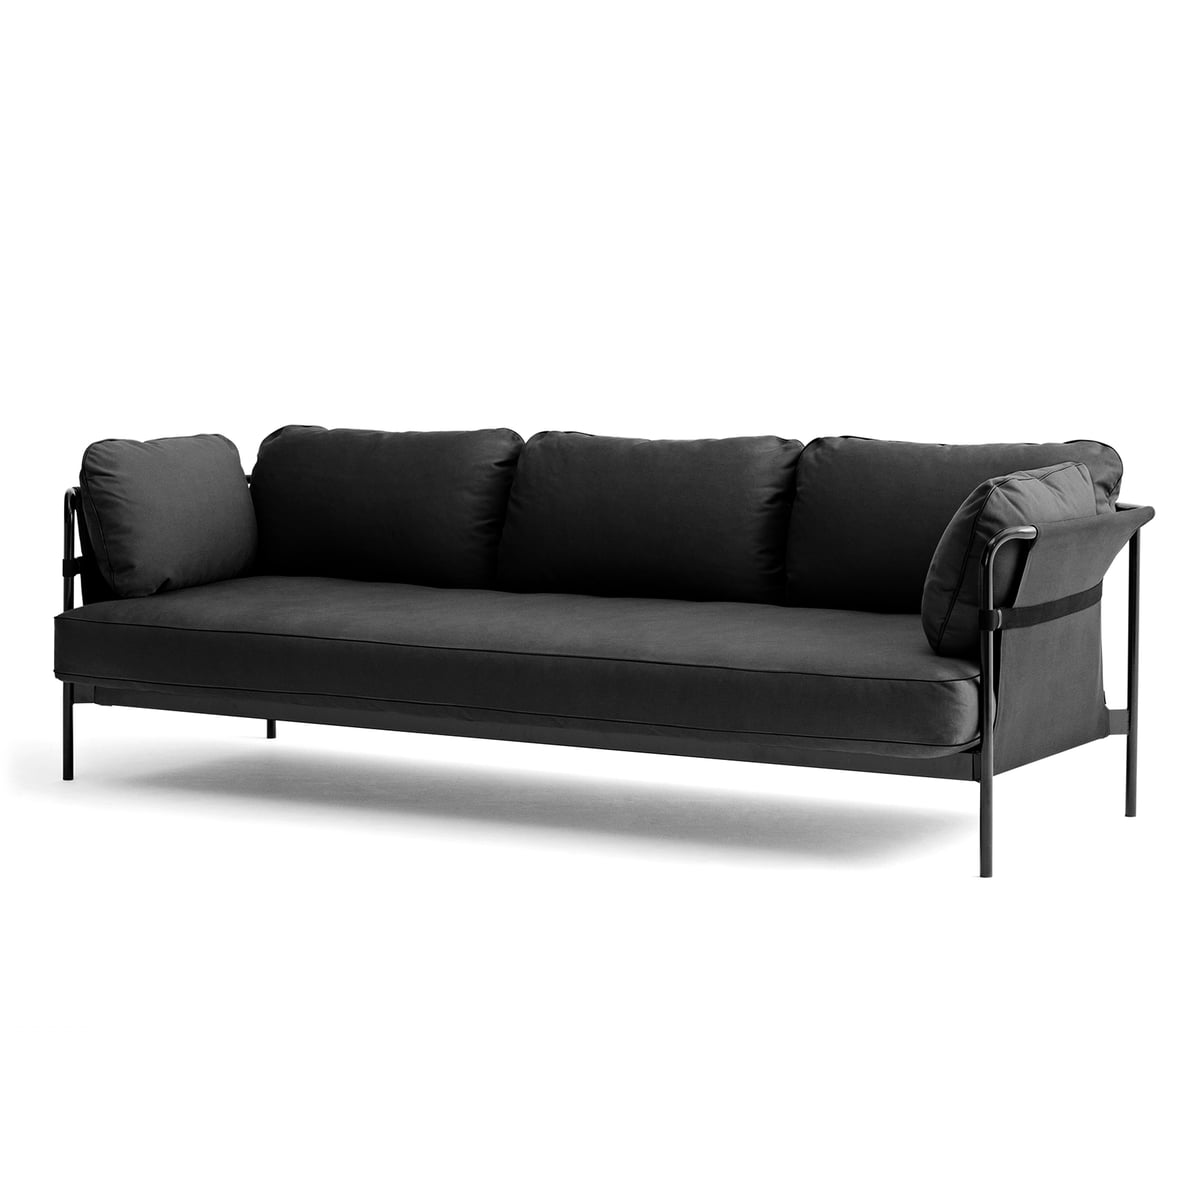 hay can sofa von bouroullec bei. Black Bedroom Furniture Sets. Home Design Ideas